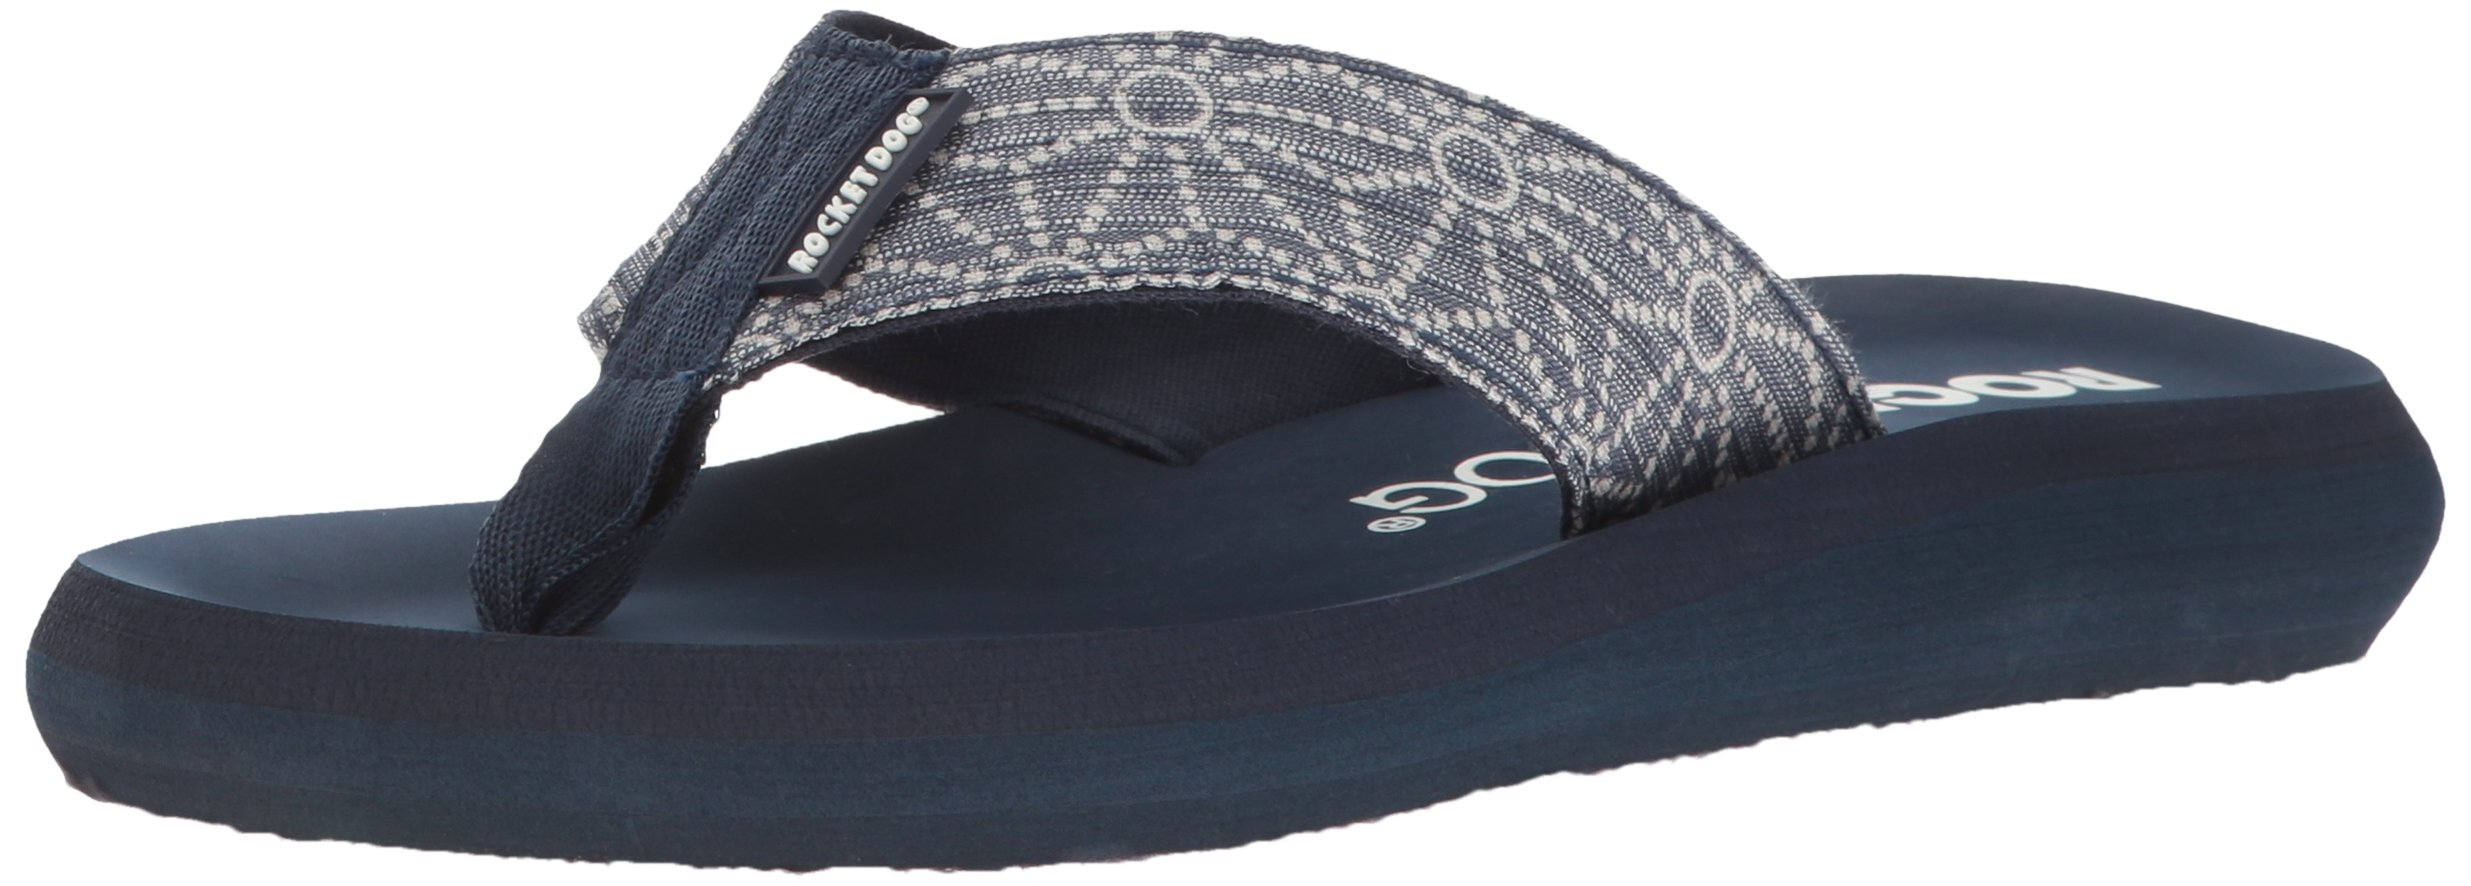 Rocket Dog Women's Spotlight 2 Tizer Cotton Flip Flop, Indigo, 7 M US